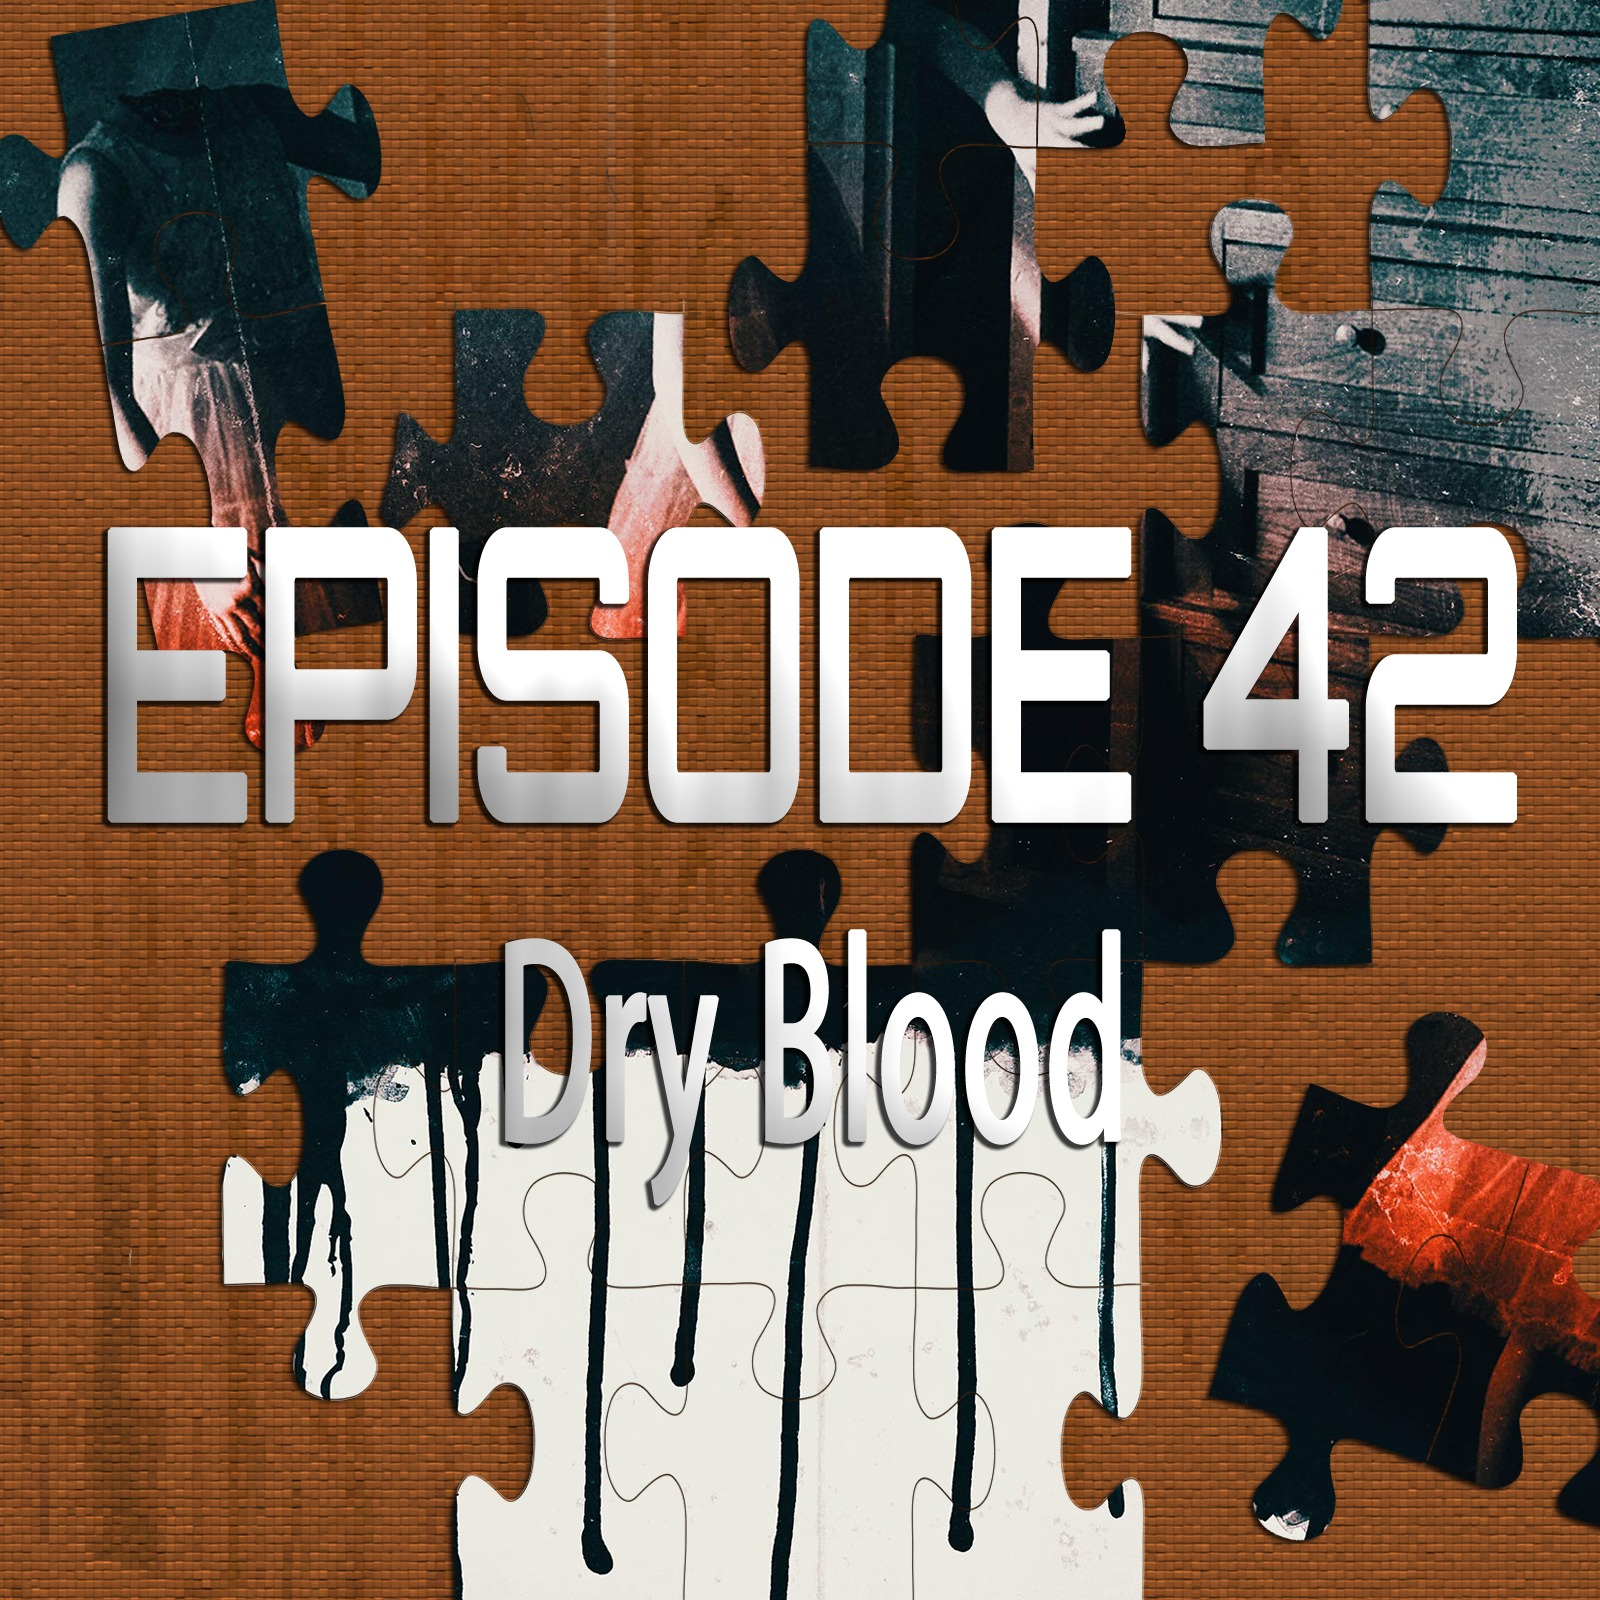 Dry Blood (Featuring Chad Clinton Freeman)